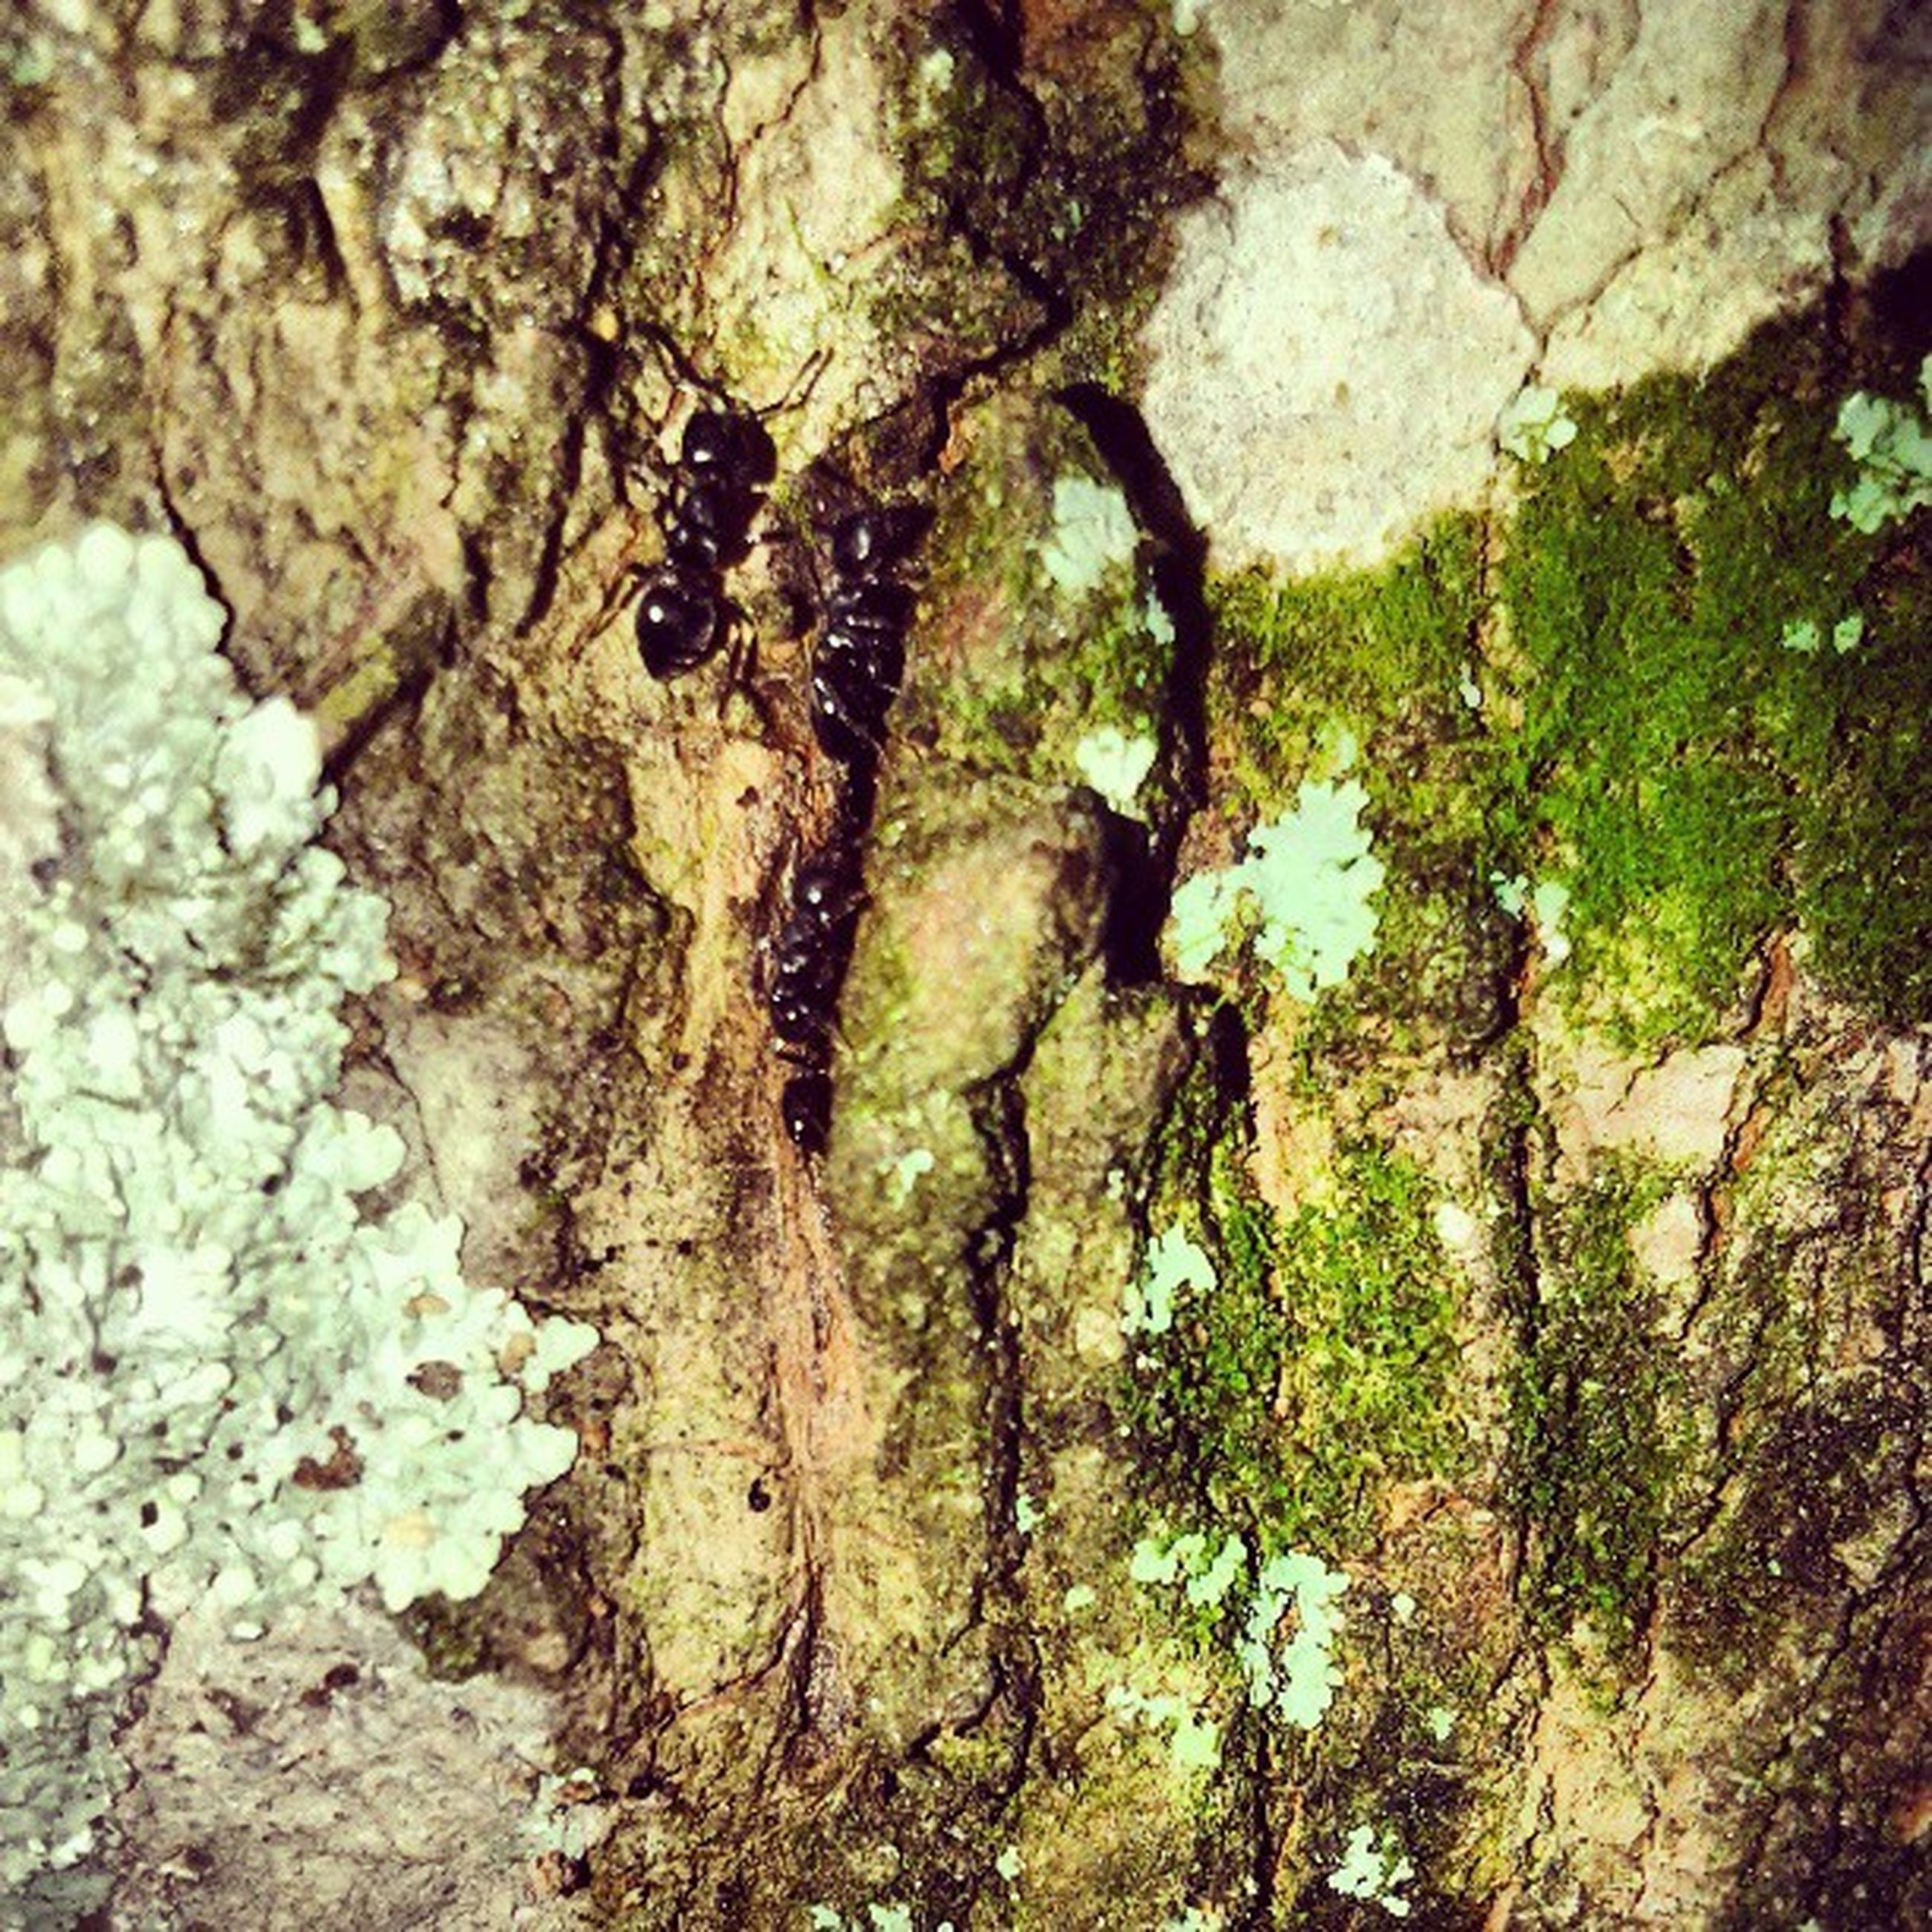 tree, textured, growth, nature, tree trunk, rough, rock - object, high angle view, moss, plant, day, outdoors, tranquility, close-up, sunlight, rock, beauty in nature, no people, rock formation, bark